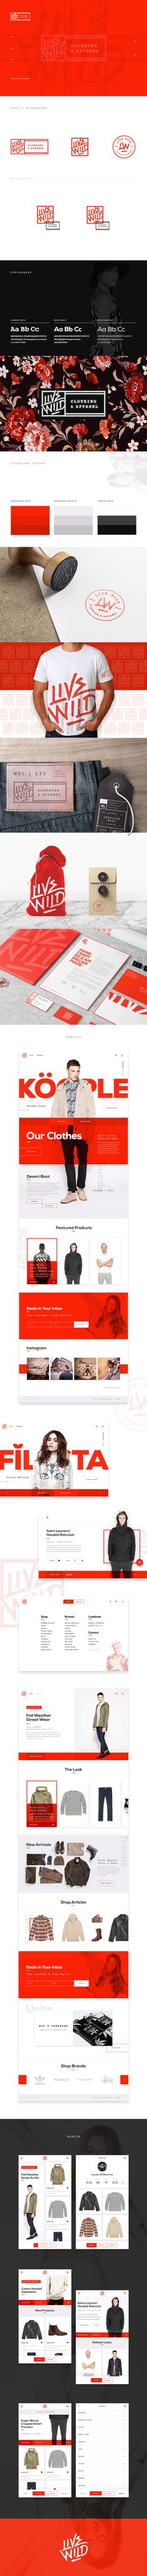 Live Wild Clothing & Apparel Branding & UI